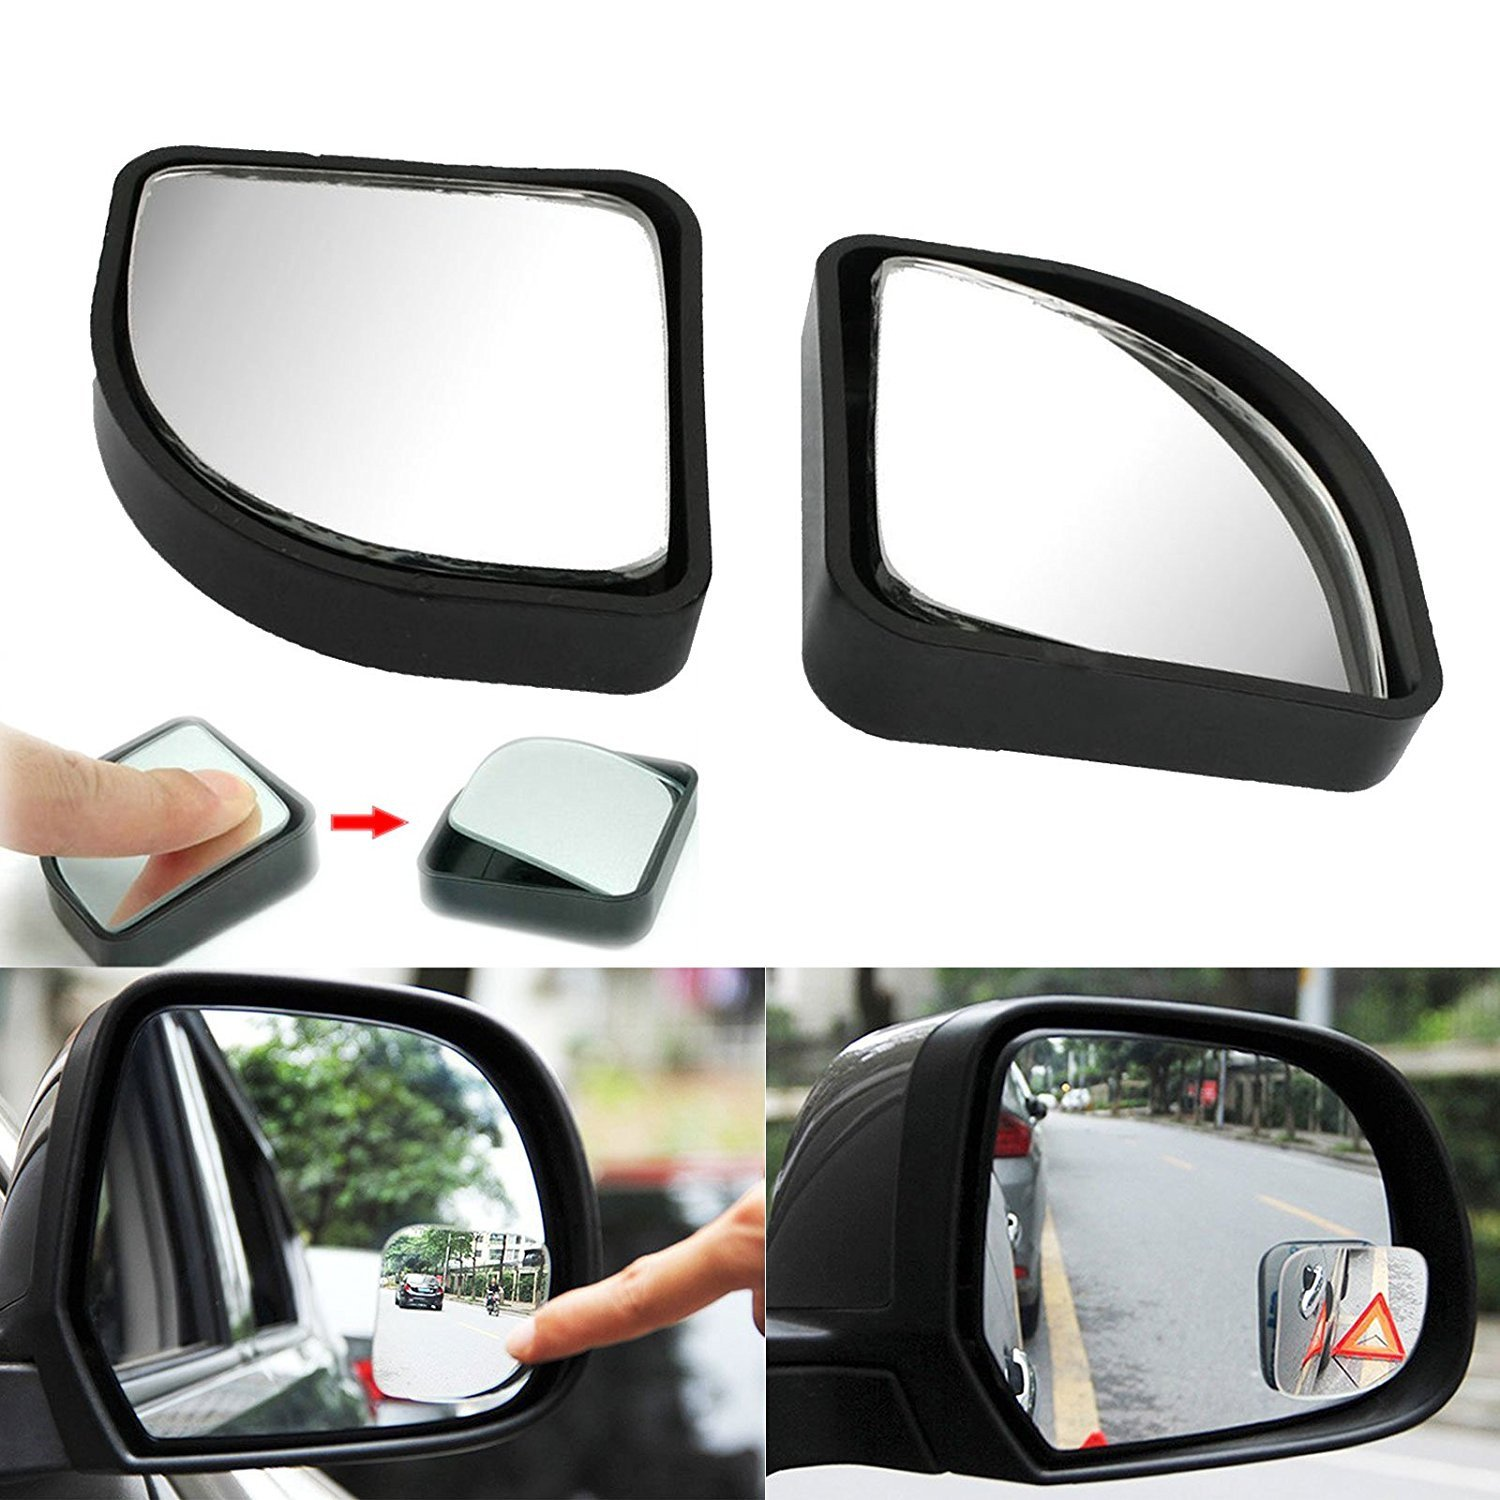 Xotic Tech Blind Spot Mirror, 2 Pcs Black Fan-shaped Auxiliary Blind Spot Convex Rear View Adjustable Angle Mirror for Car For Car Truck SUVs Motorcycle